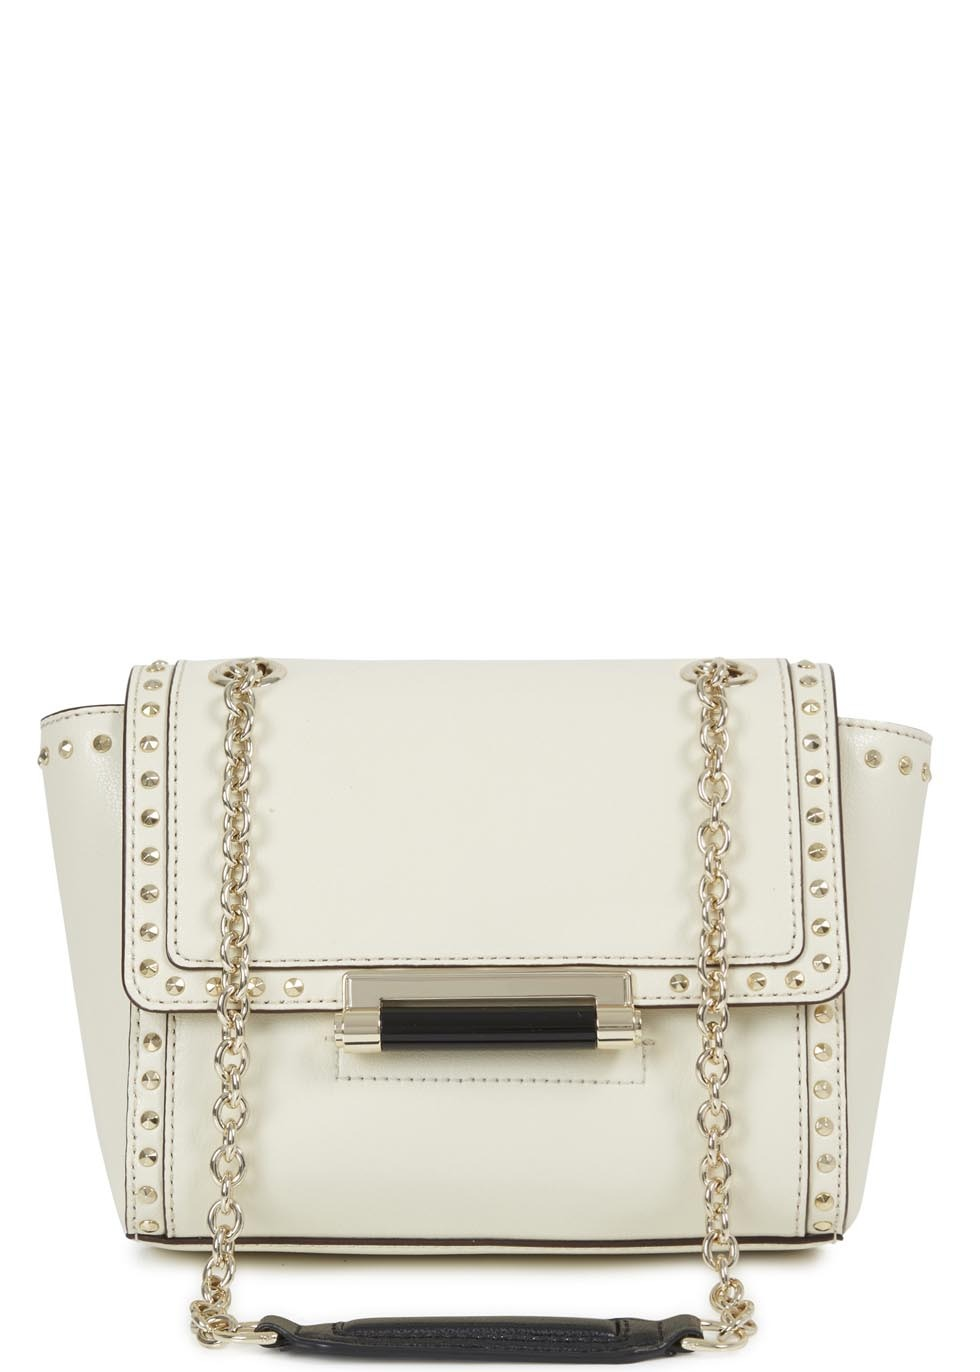 Cream Studded Leather Shoulder Bag - predominant colour: ivory/cream; secondary colour: gold; type of pattern: standard; style: shoulder; length: shoulder (tucks under arm); size: standard; material: leather; embellishment: studs; pattern: plain; finish: plain; occasions: creative work; season: s/s 2014